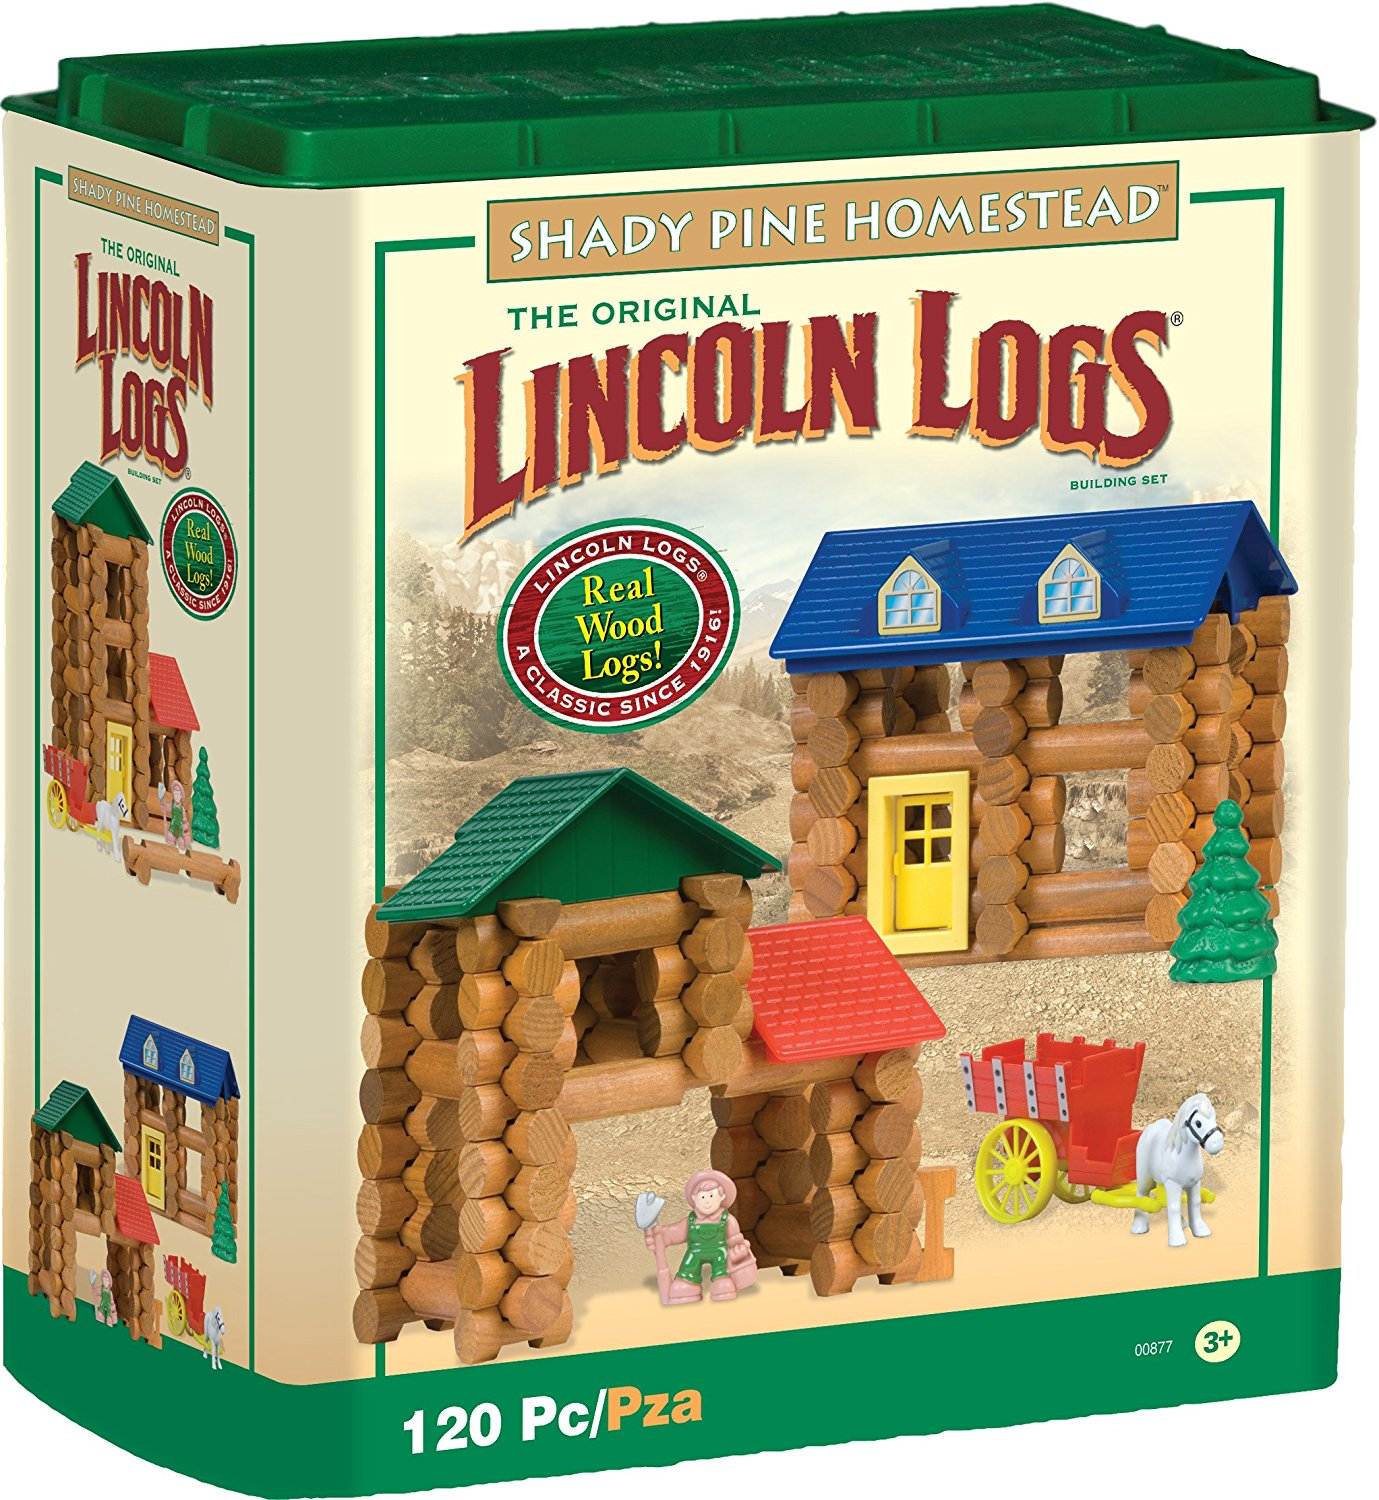 Lincoln Logs Shady Pine Homestead 120 Pc - NEW